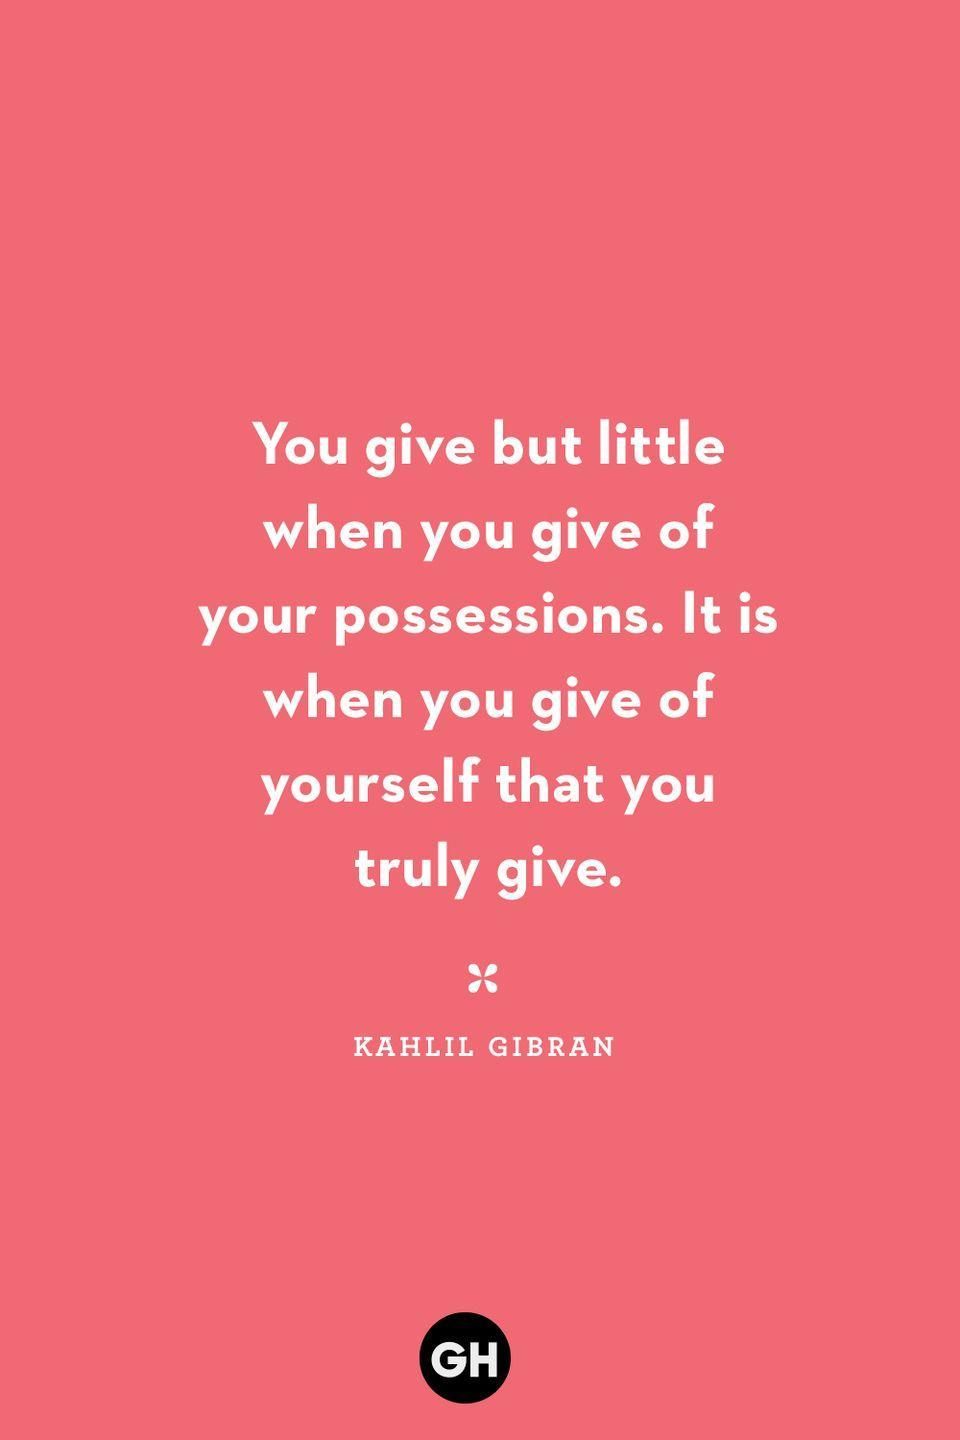 <p>You give but little when you give of your possessions. It is when you give of yourself that you truly give.</p>